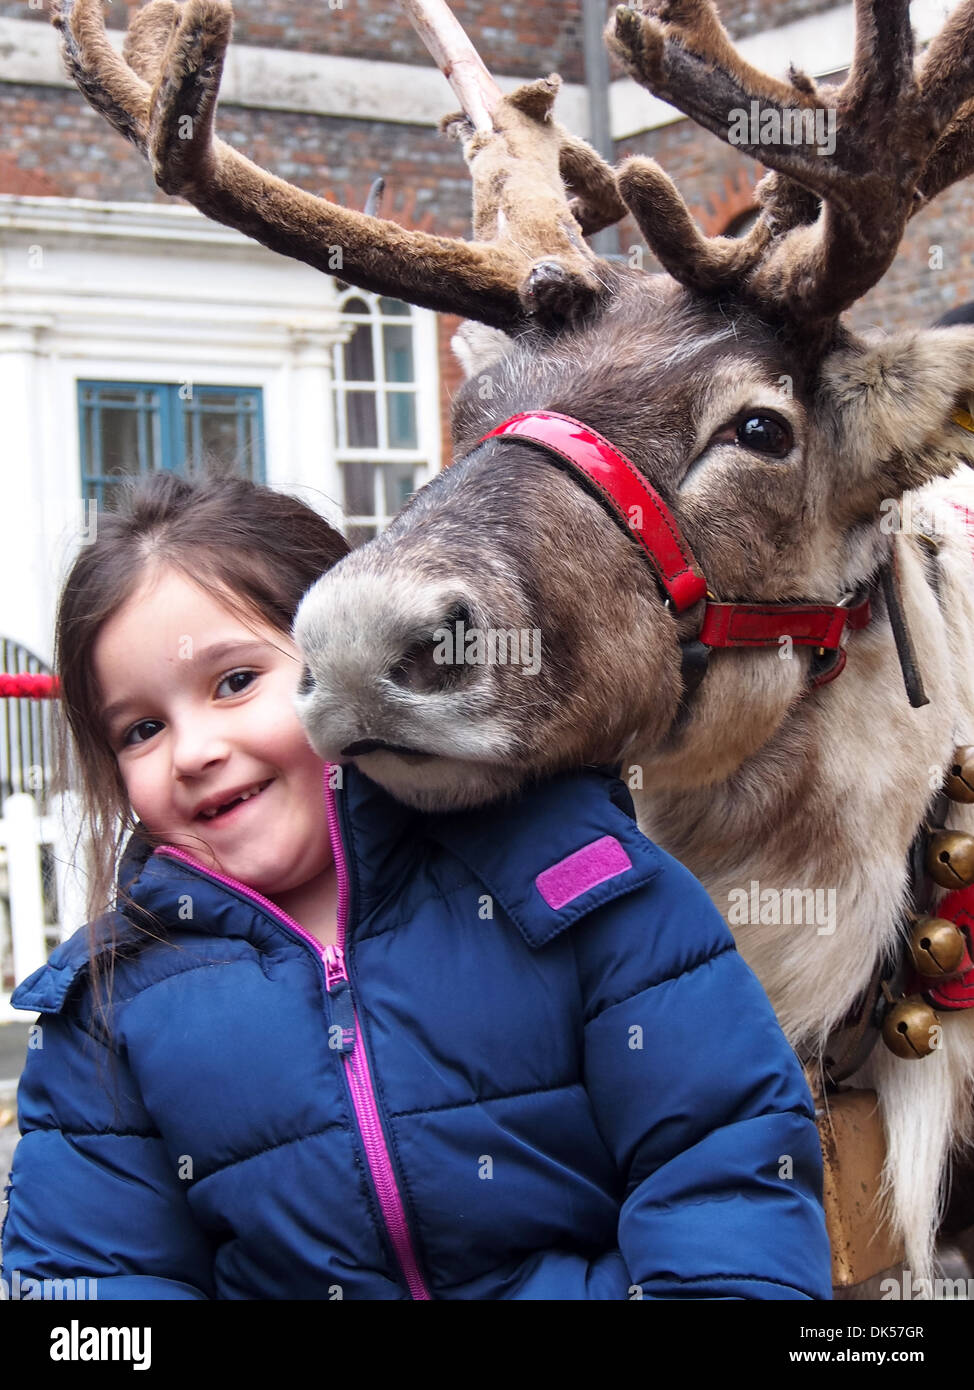 a-reindeer-making-friends-with-a-young-girl-DK57GR.jpg